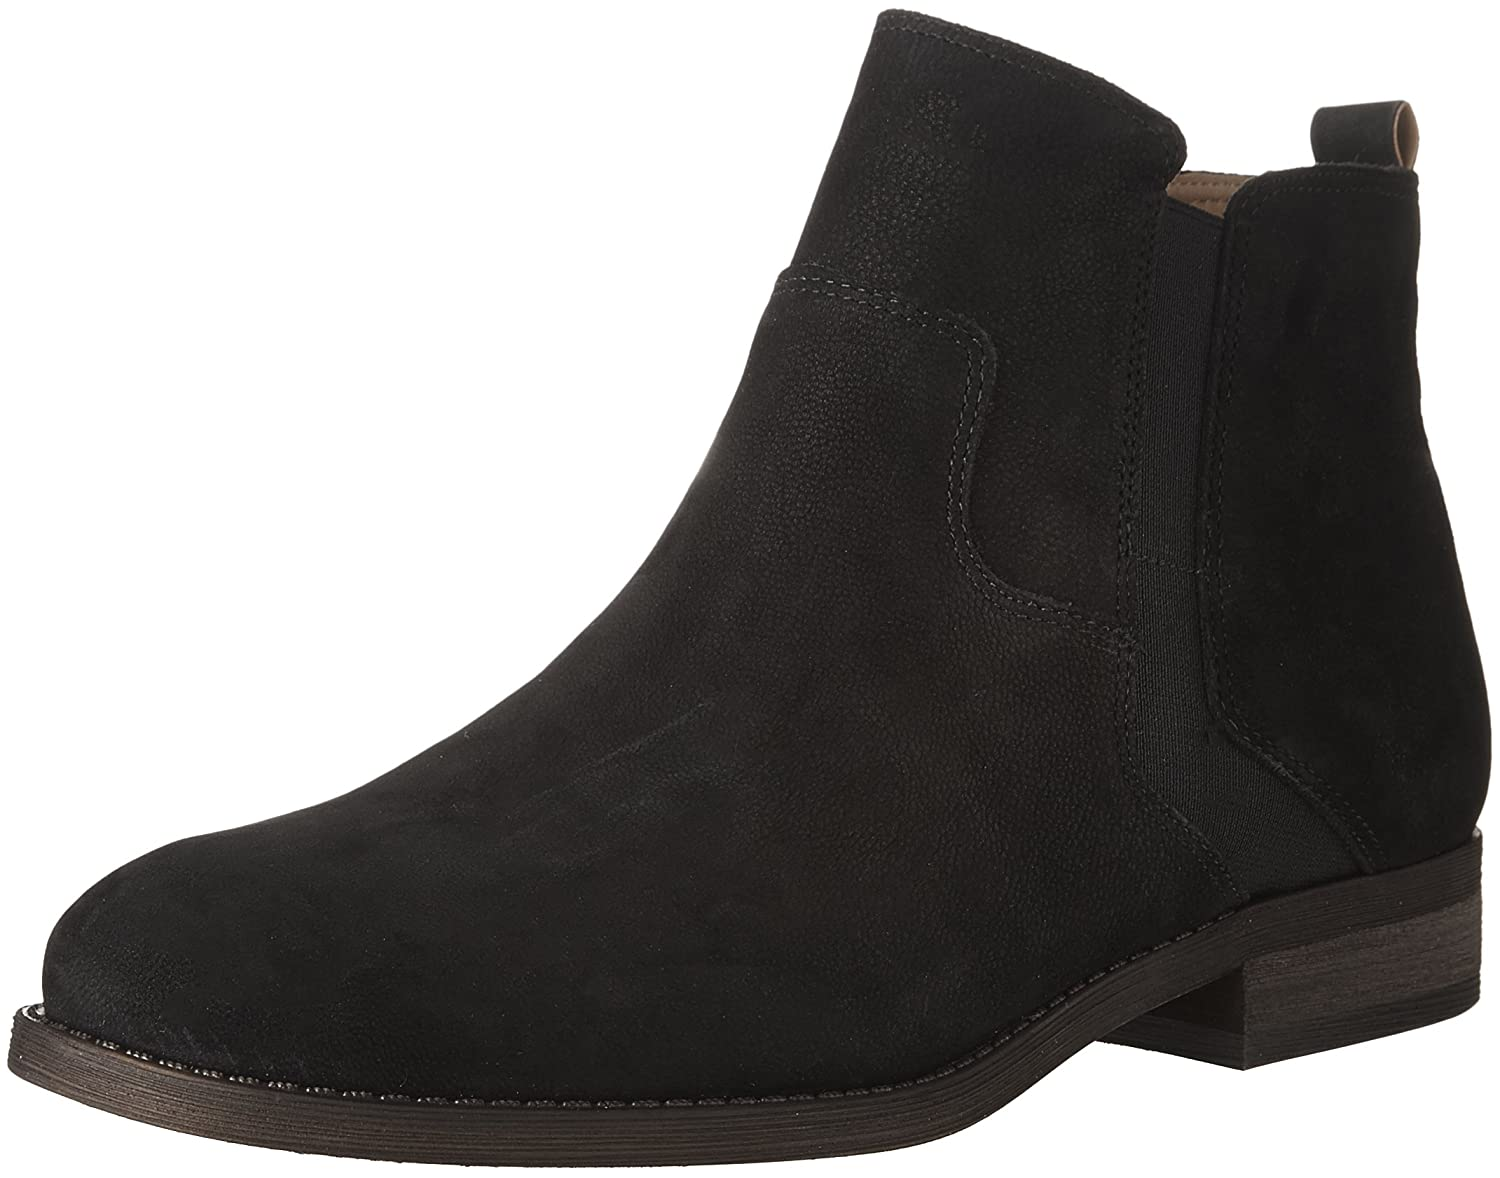 Black Leather Franco Sarto Women's Kane Ankle Boot